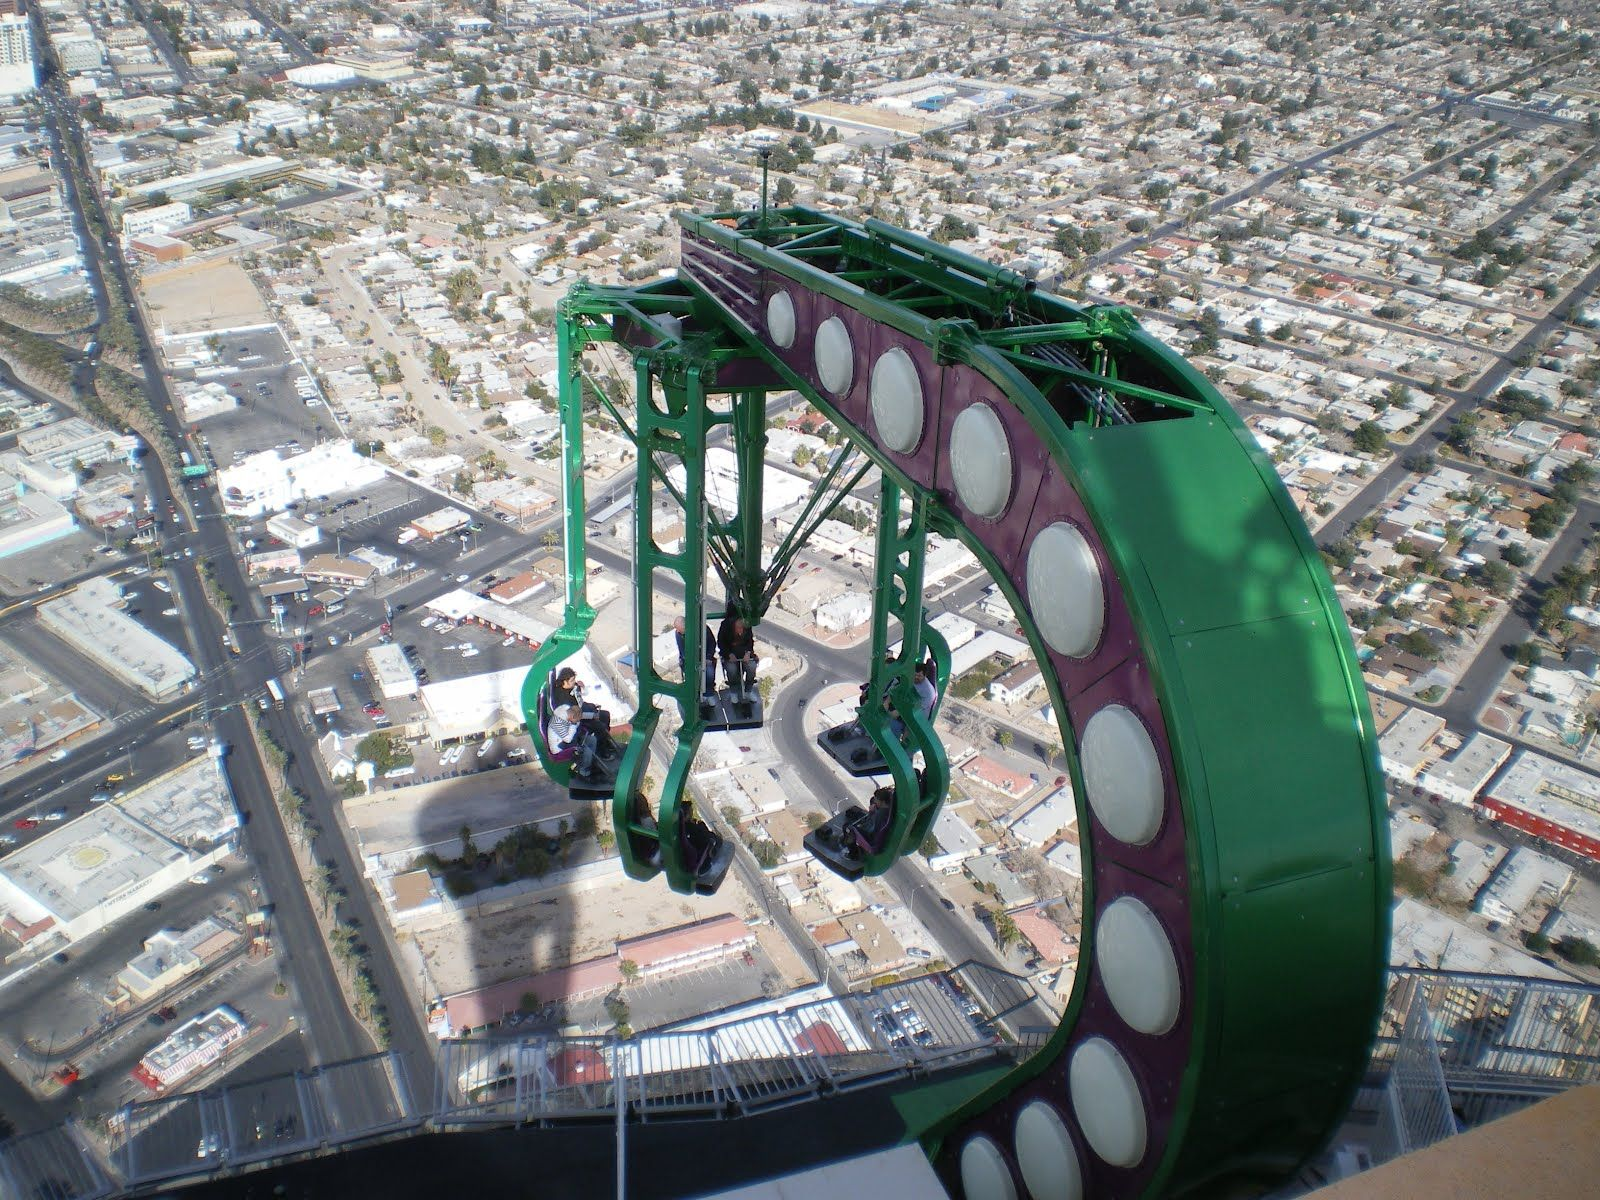 Top Adrenaline Attractions In The World Vegas Roller - 7 most extreme base jumping destinations in the world